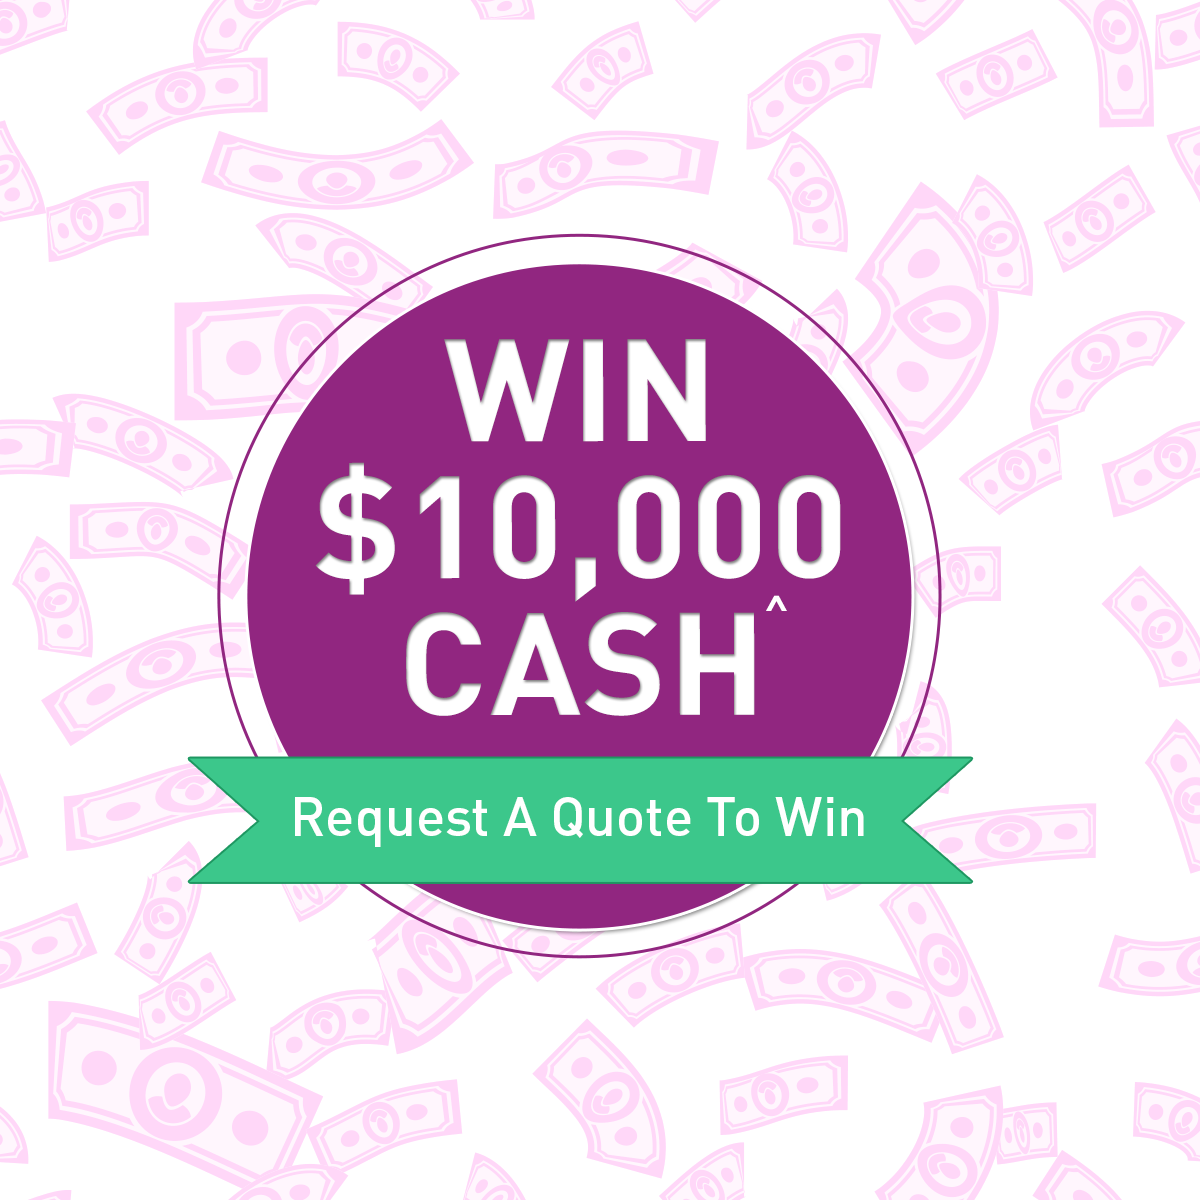 We are giving away 10,000! Enter by getting a quote for